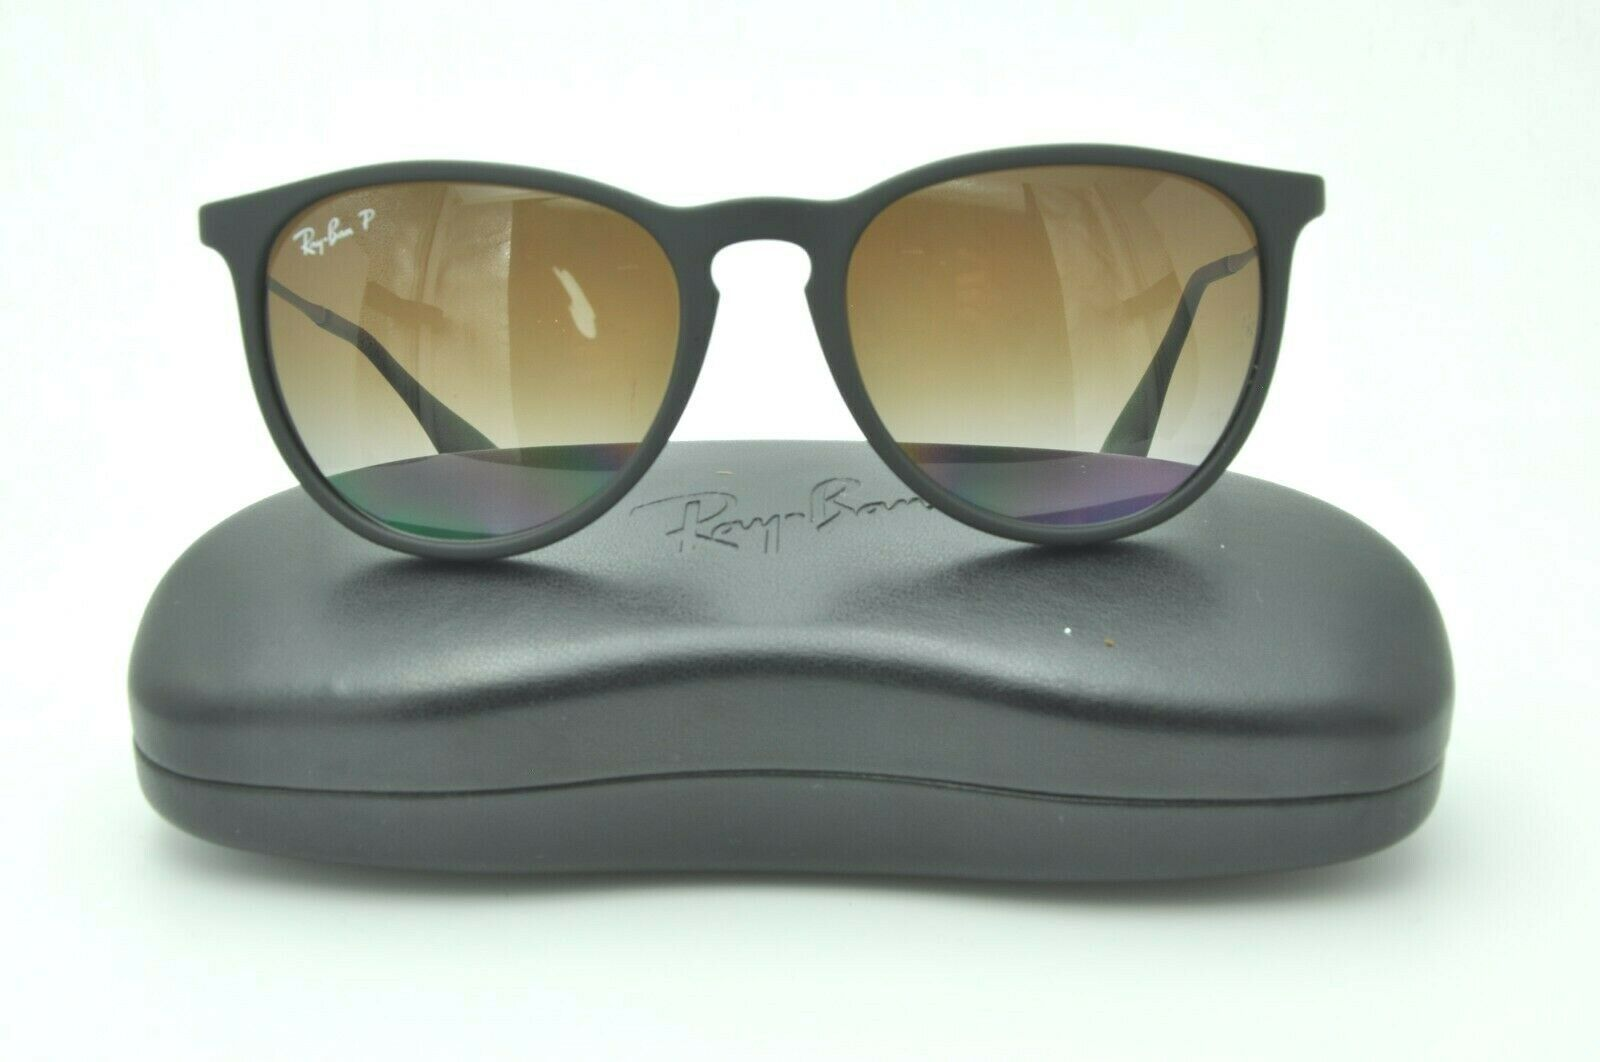 3c996a5346 Ray Ban RB 4171 Erika Sunglasses 622/8G Rubber Black / Brown Gradient  Polarized - $57.93